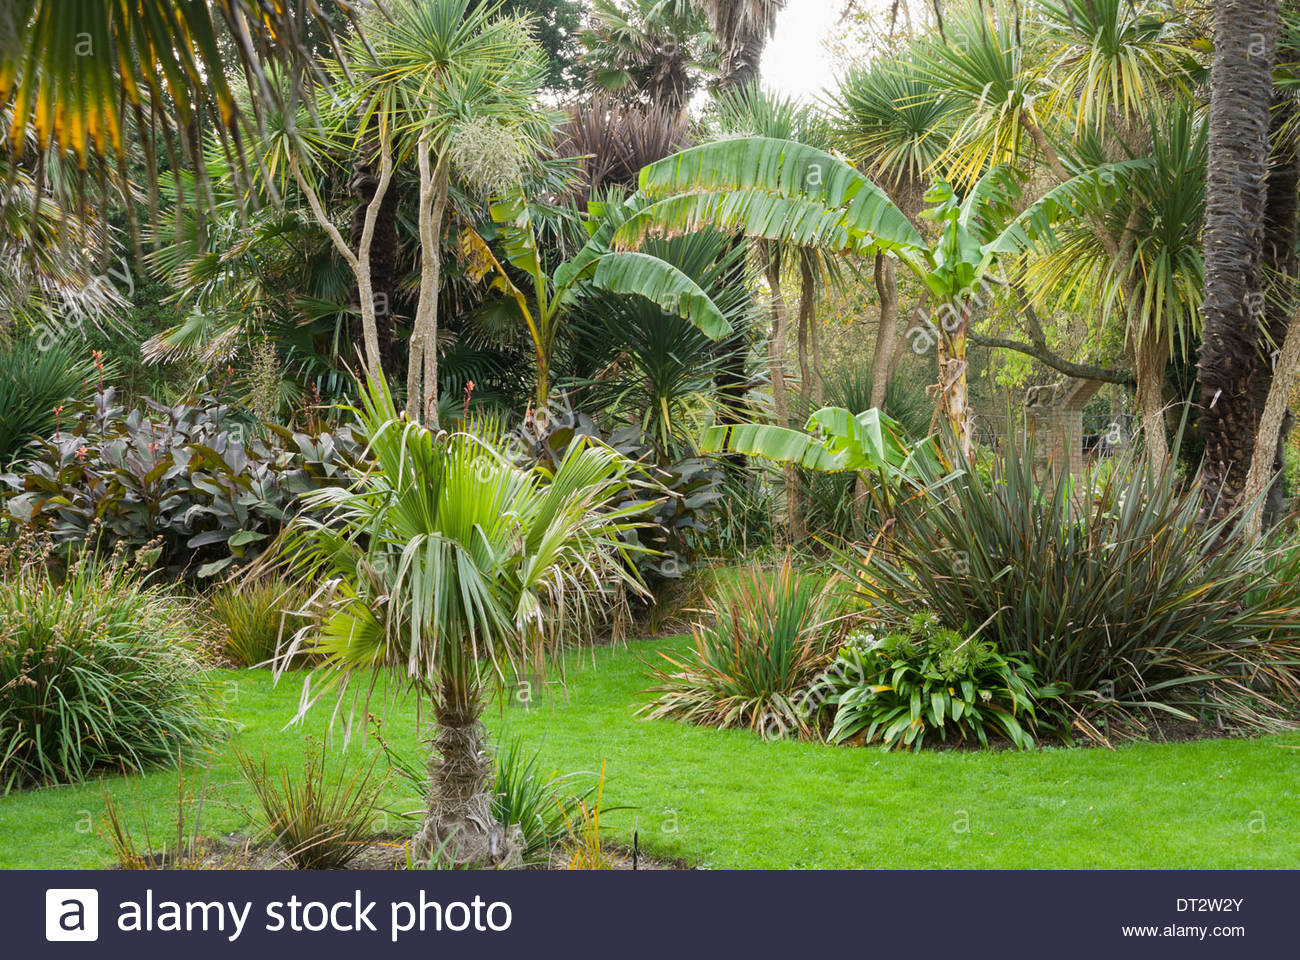 the garden isle stock photos u0026 the garden isle stock images alamy